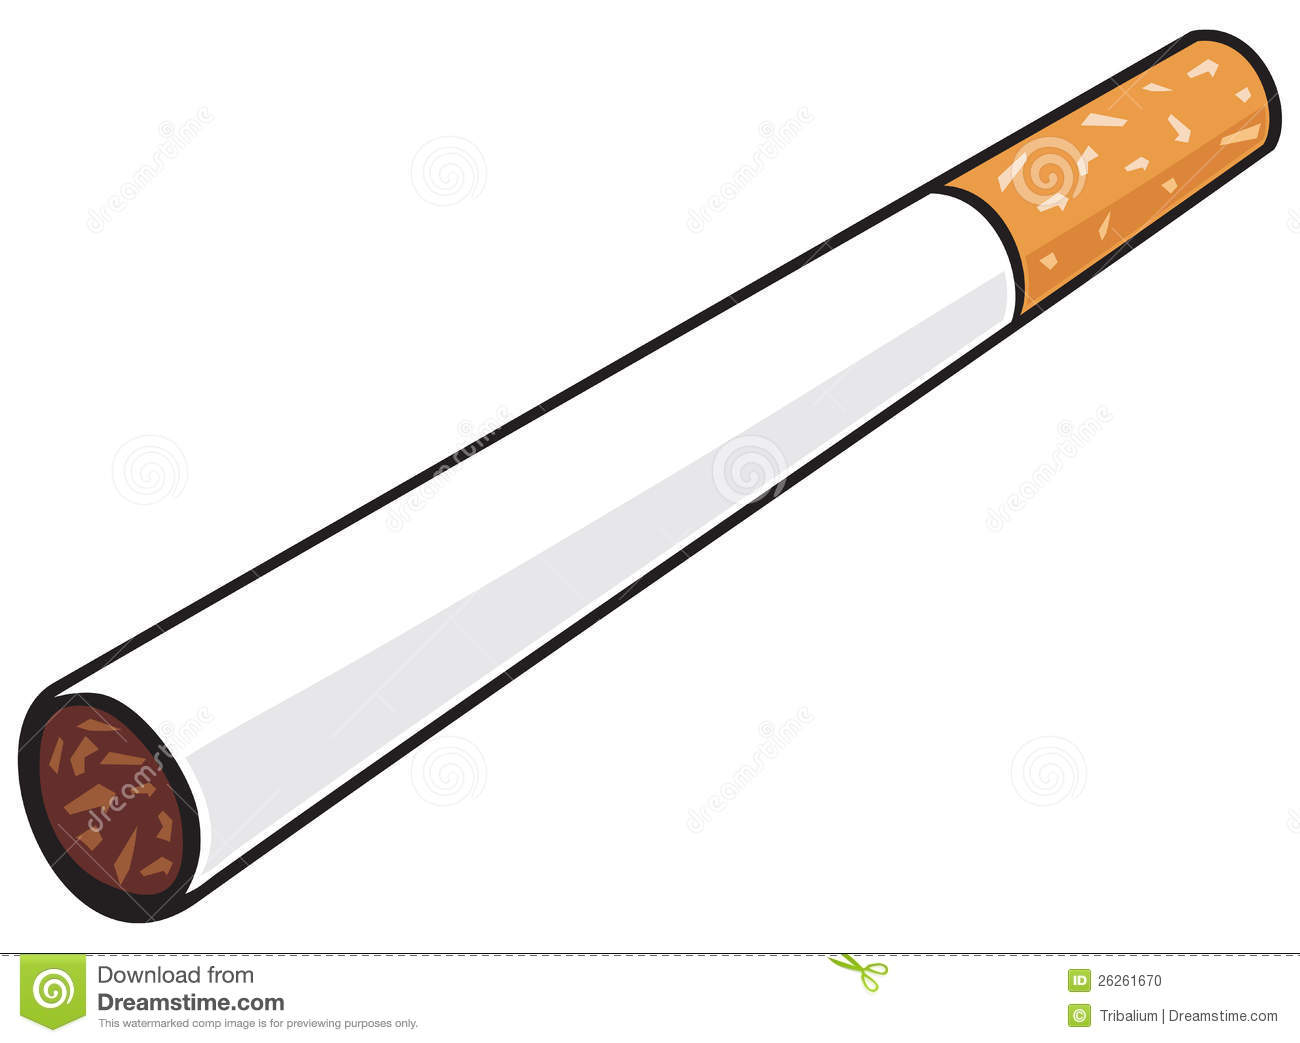 Cigarette clipart #3, Download drawings